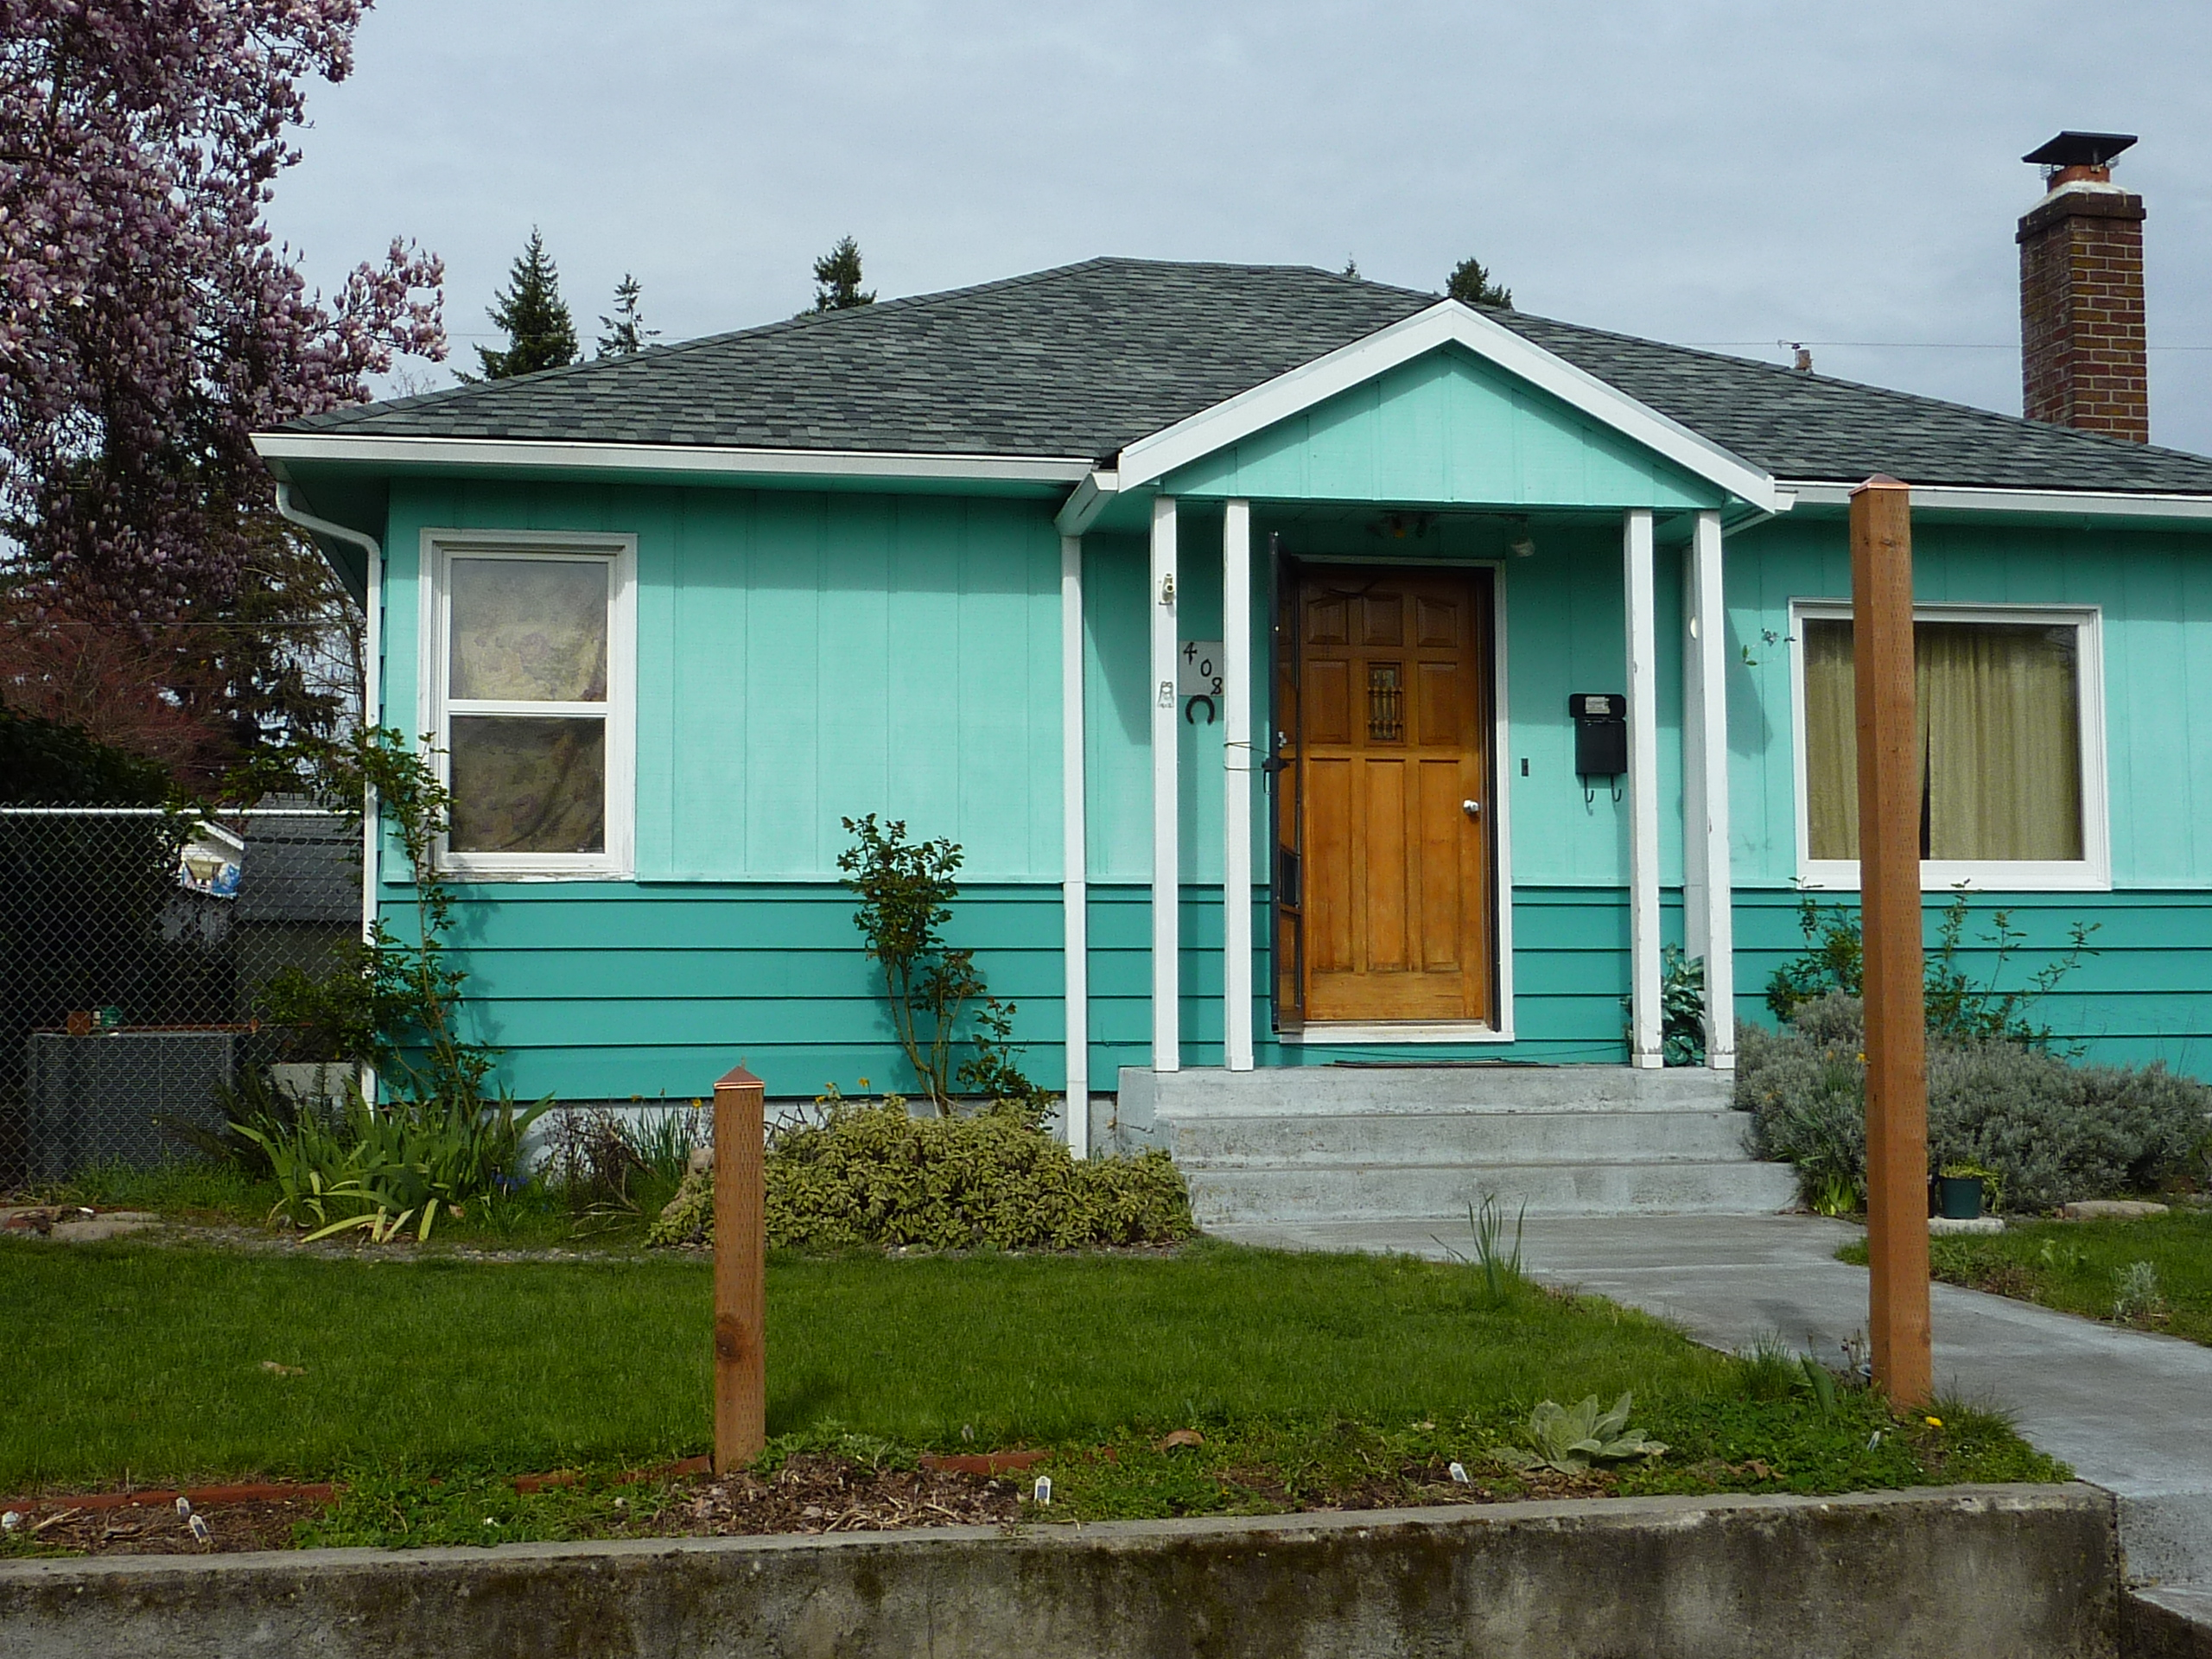 Does Your Exterior Paint Color Fight With Nature?